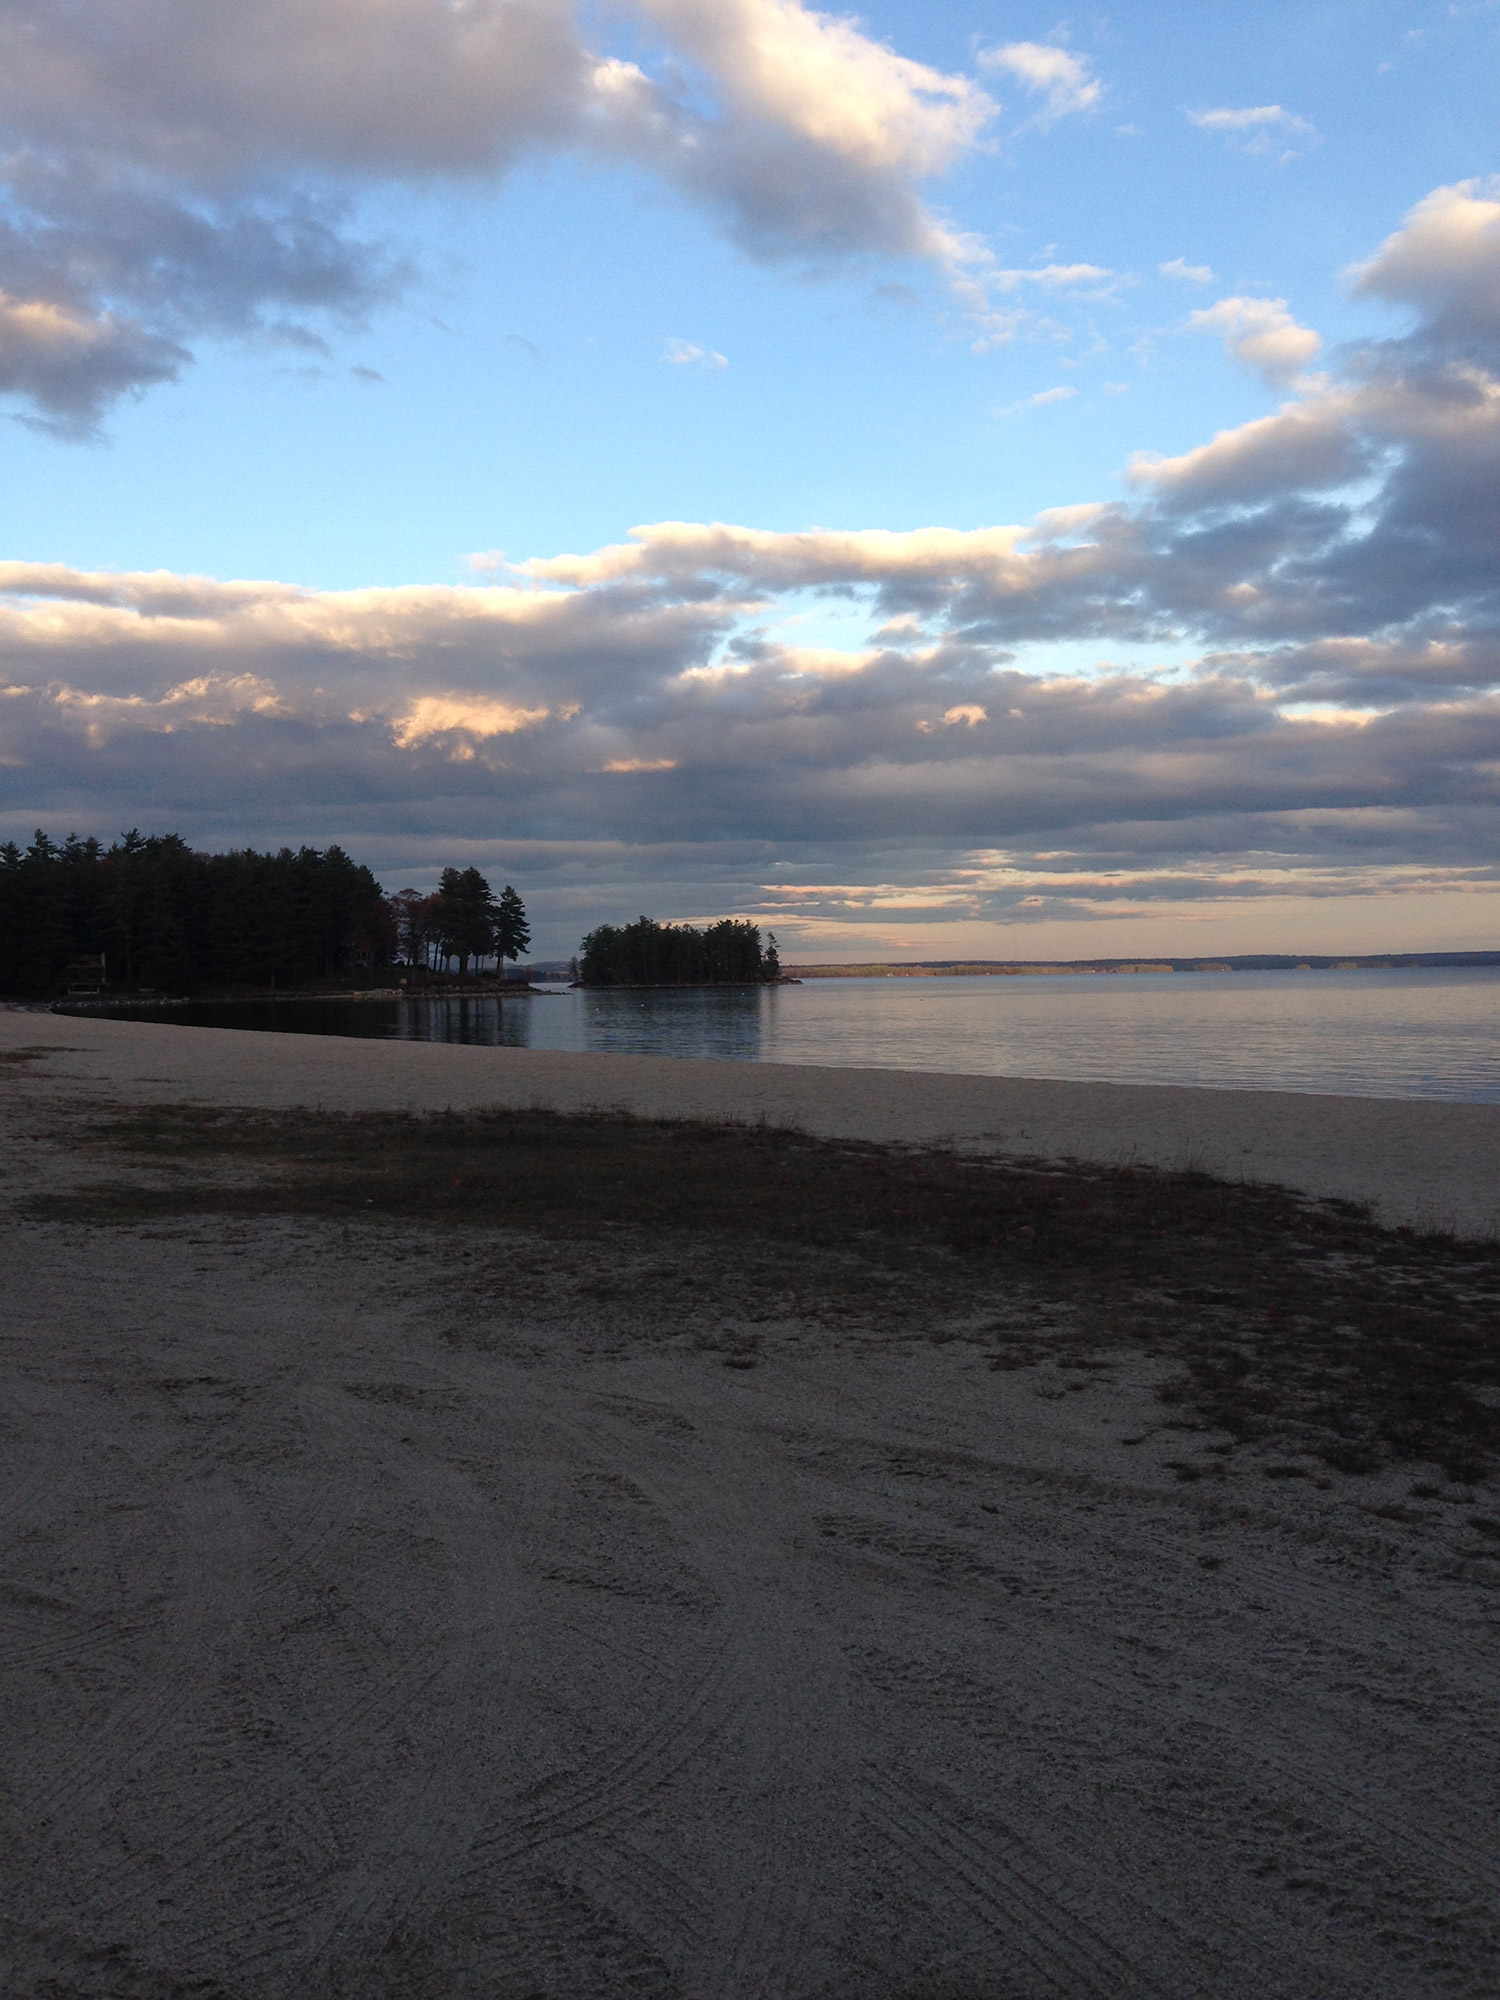 It may seem like an eternity before Sebago Lake will again brim with summer activities, but Maria J. Walker can still appreciate its stark, offseason beauty.